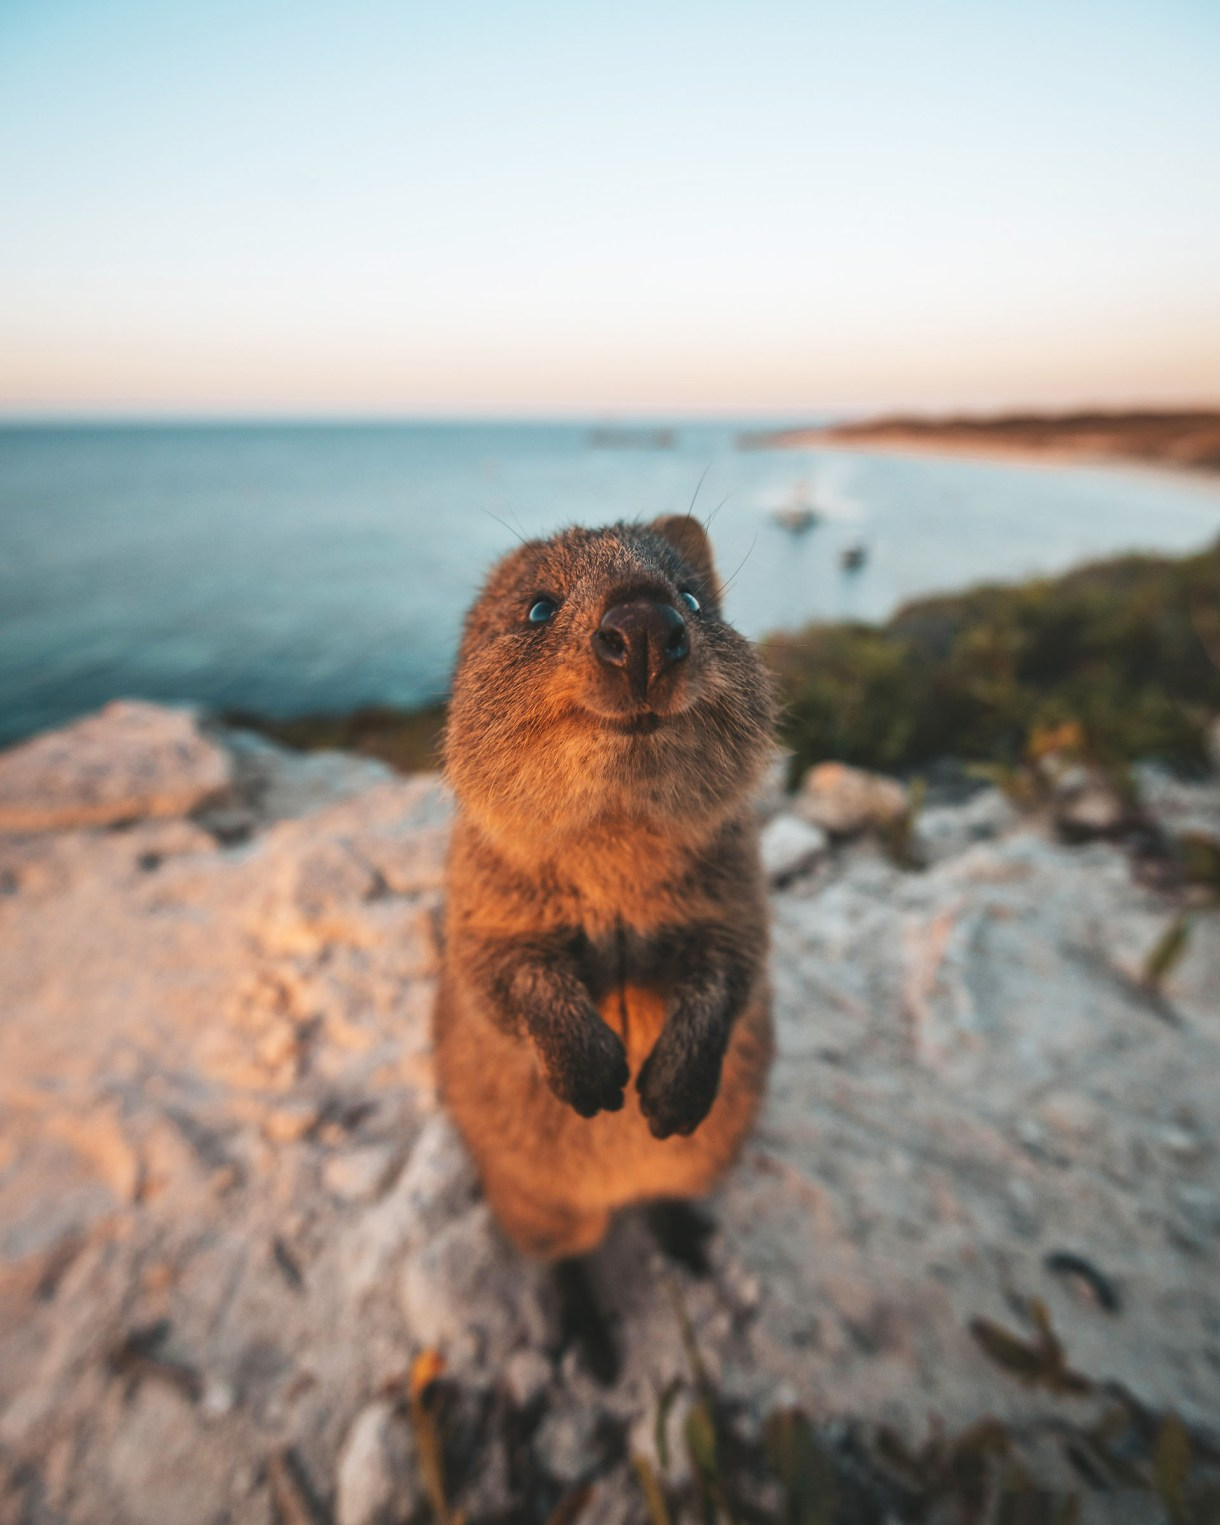 (James Vodicka/ The Comedy Wildlife Photography Awards 2019)